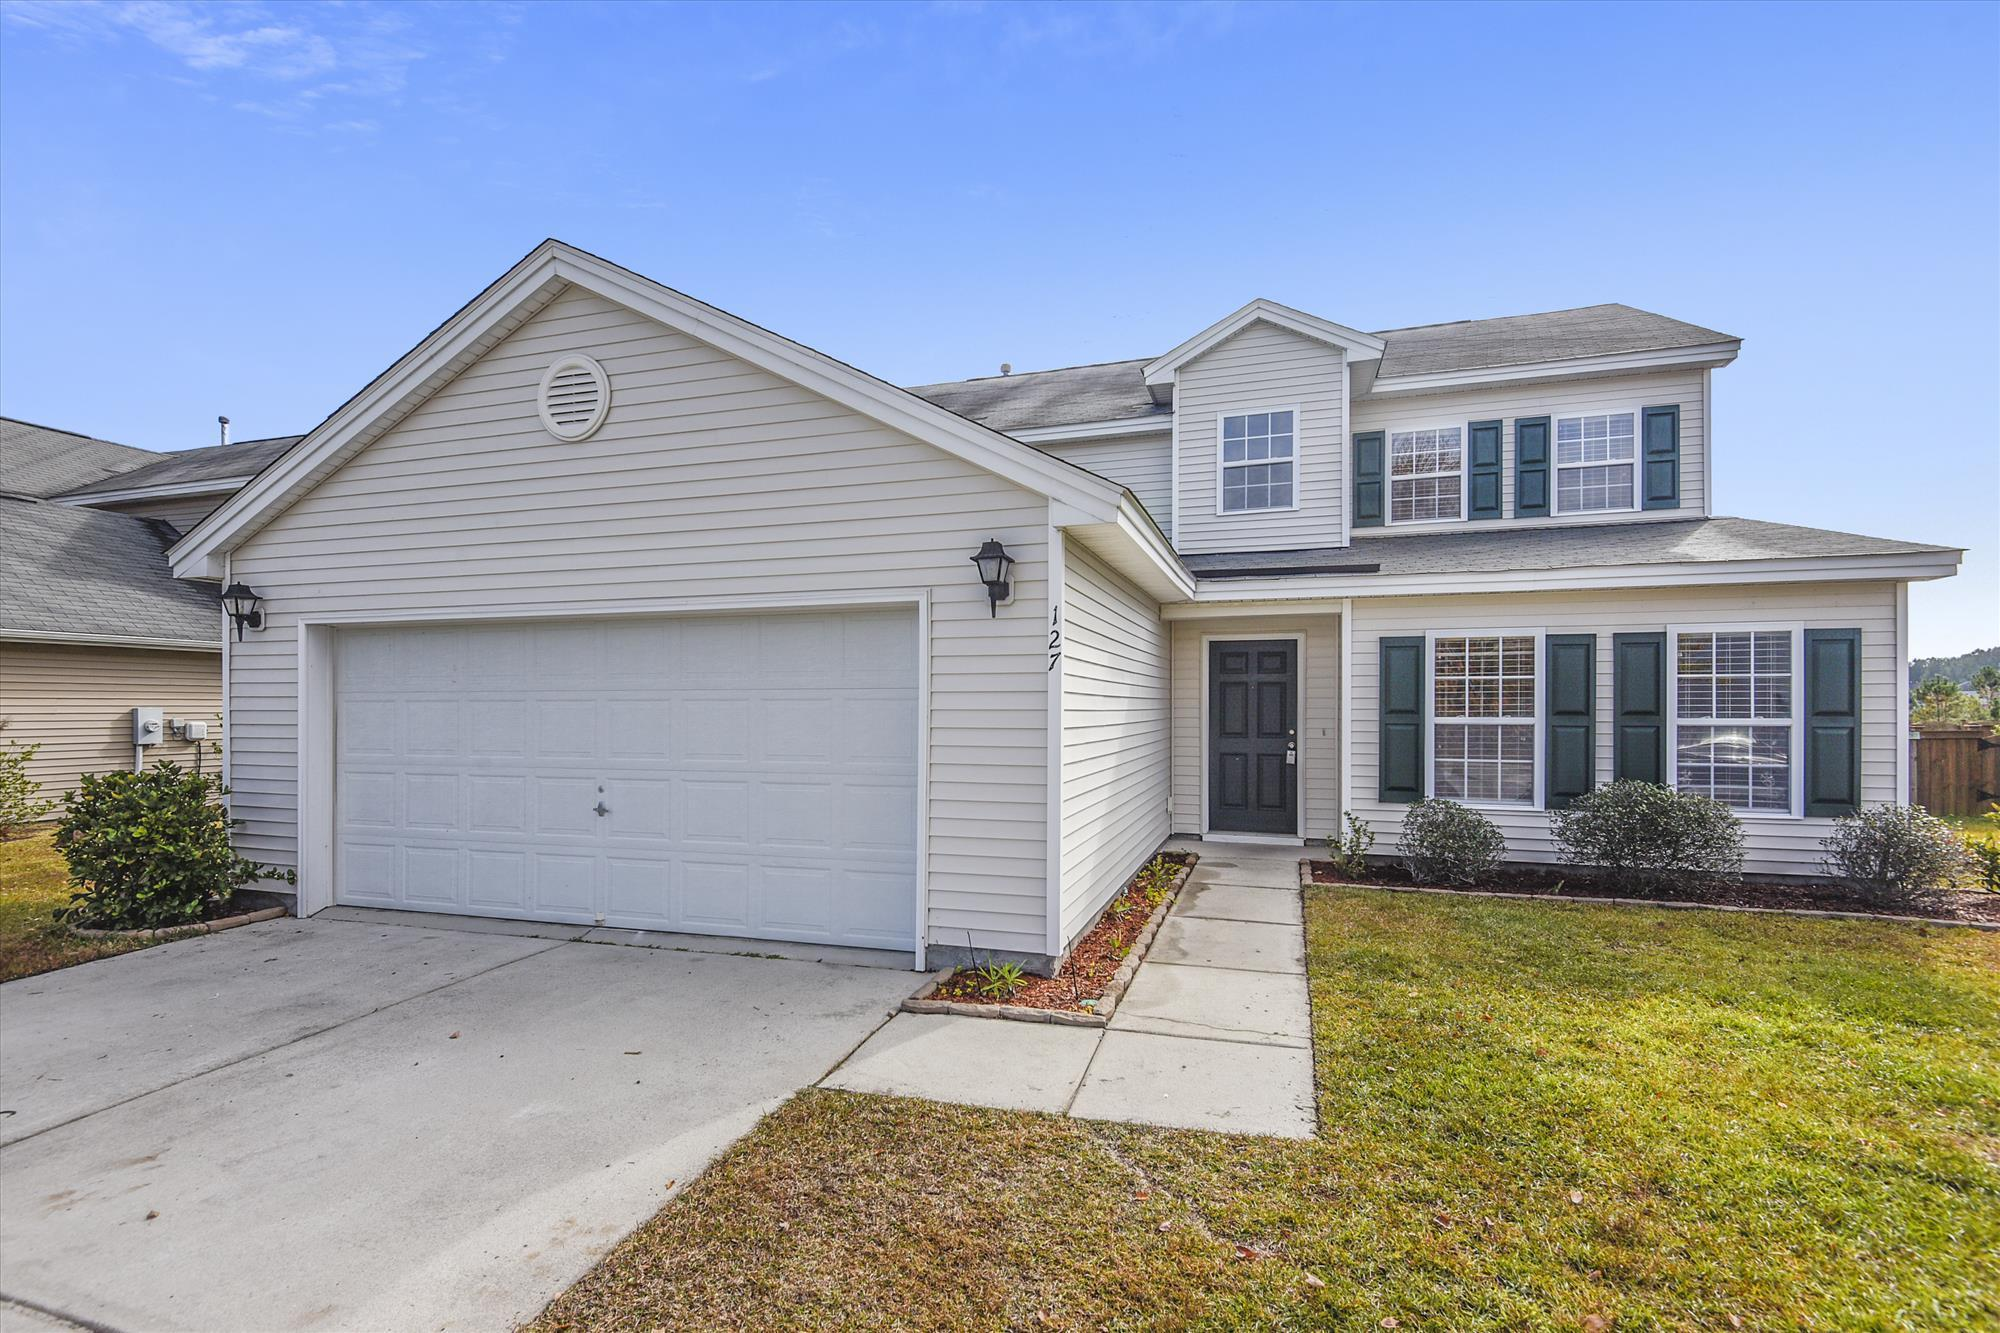 127 Decatur Drive Summerville, Sc 29486